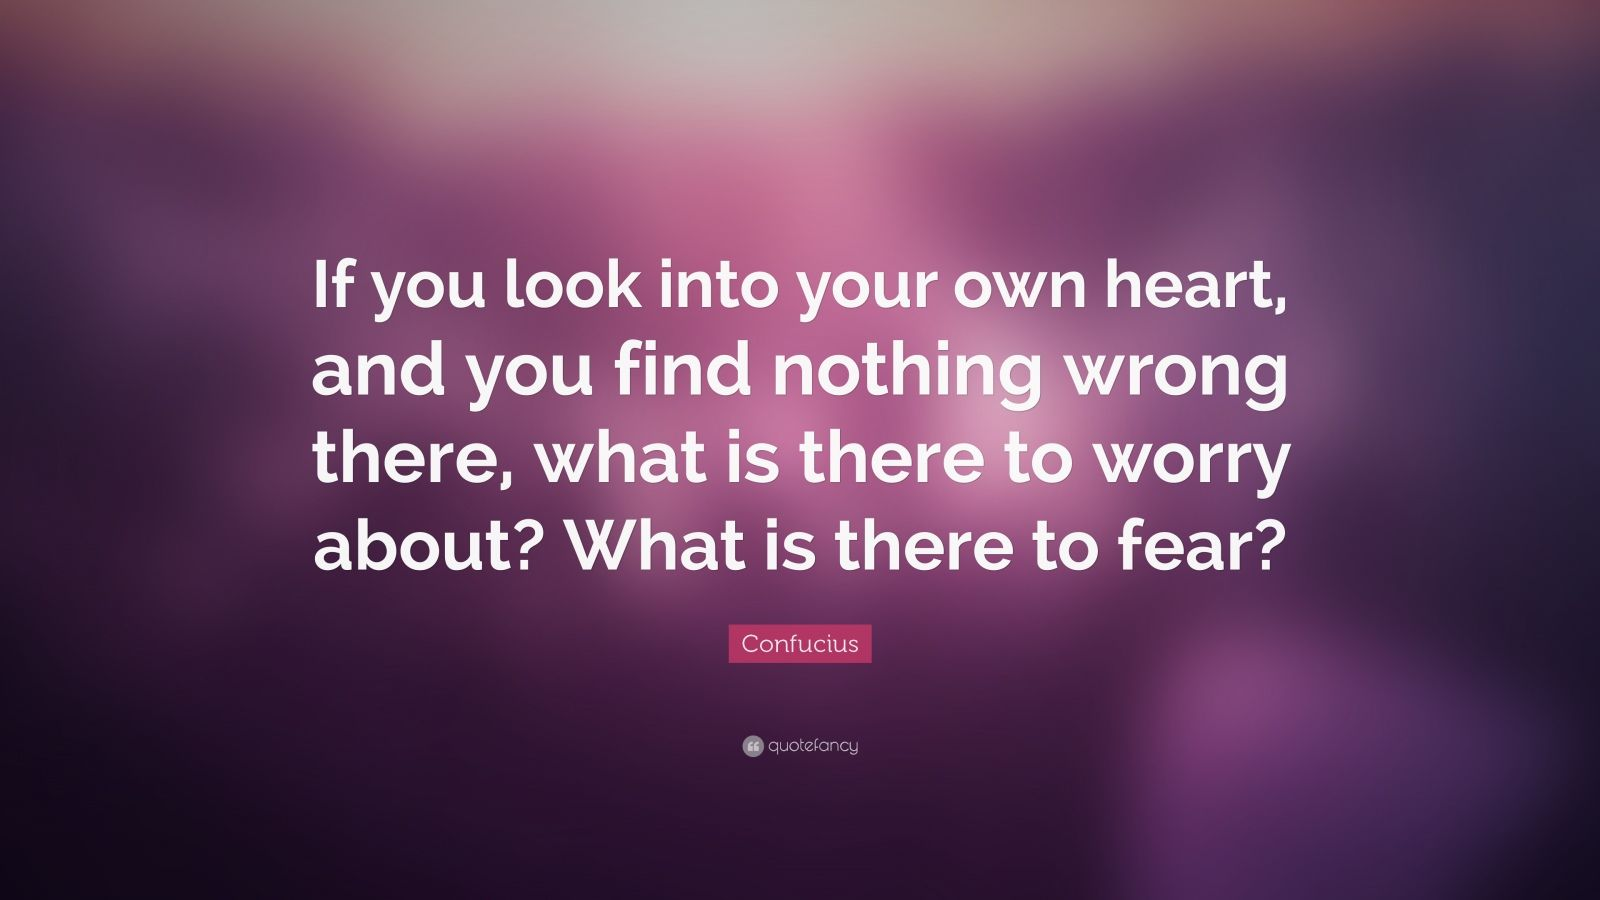 """Confucius Quote: """"If you look into your own heart, and you find nothing wrong there, what is there to worry about? What is there to fear?"""""""